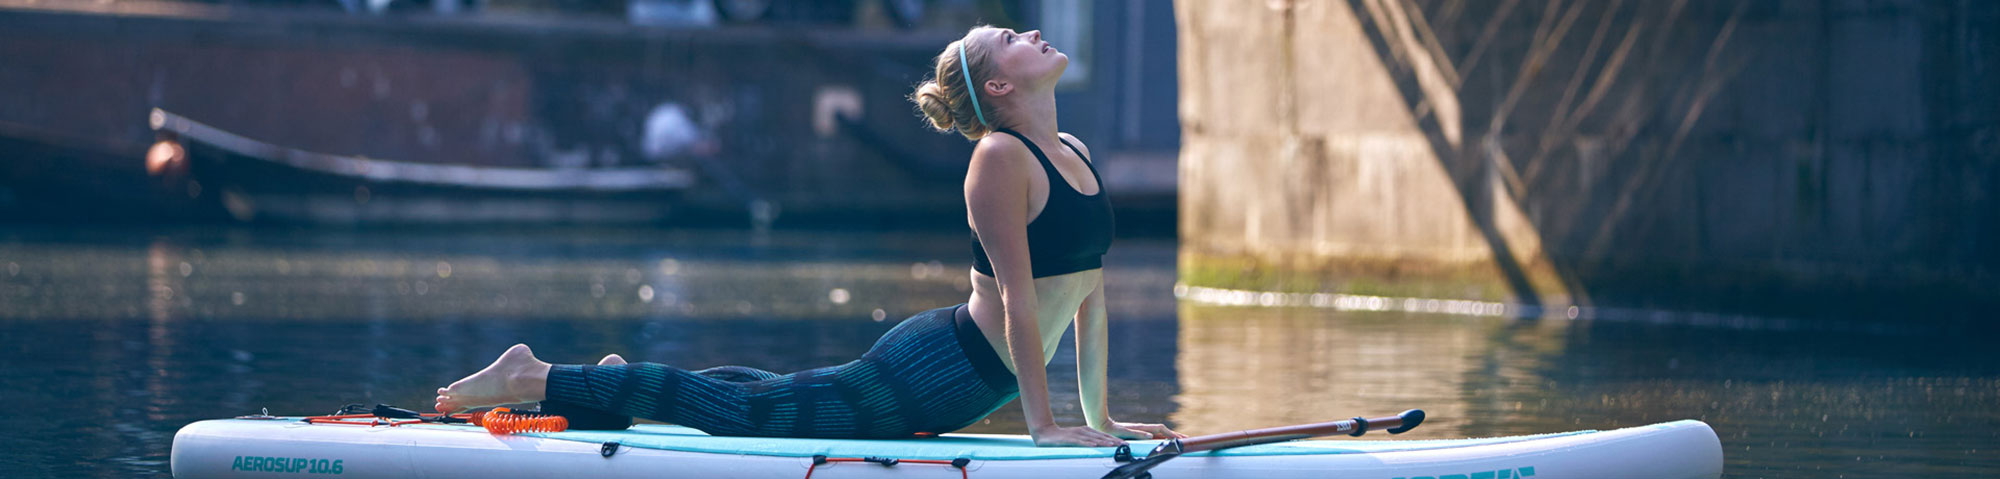 SUP yoga | Eemhof Watersport & Beachclub